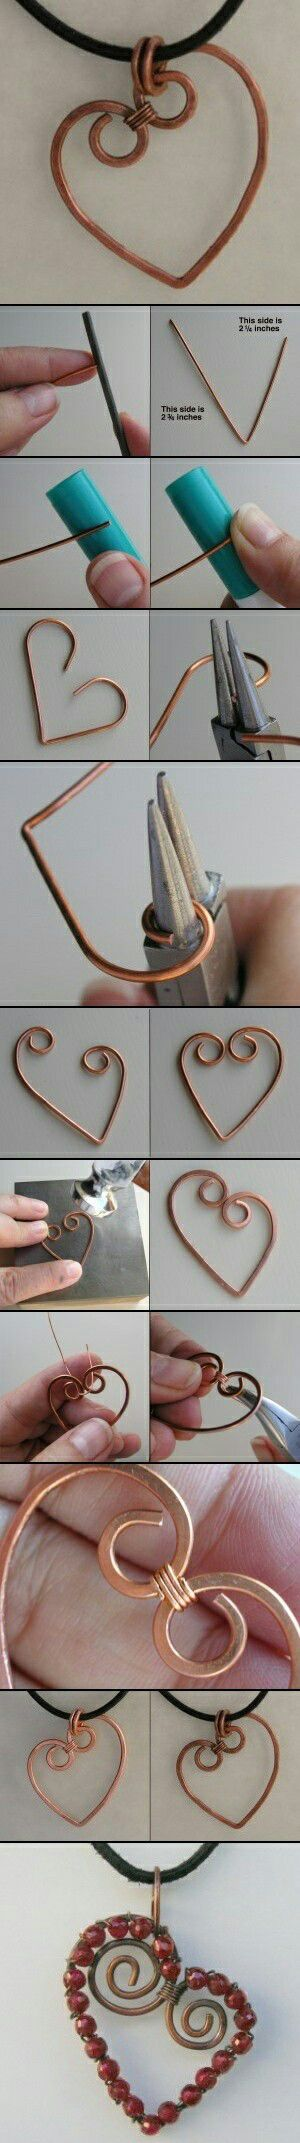 how to make pendants with wire